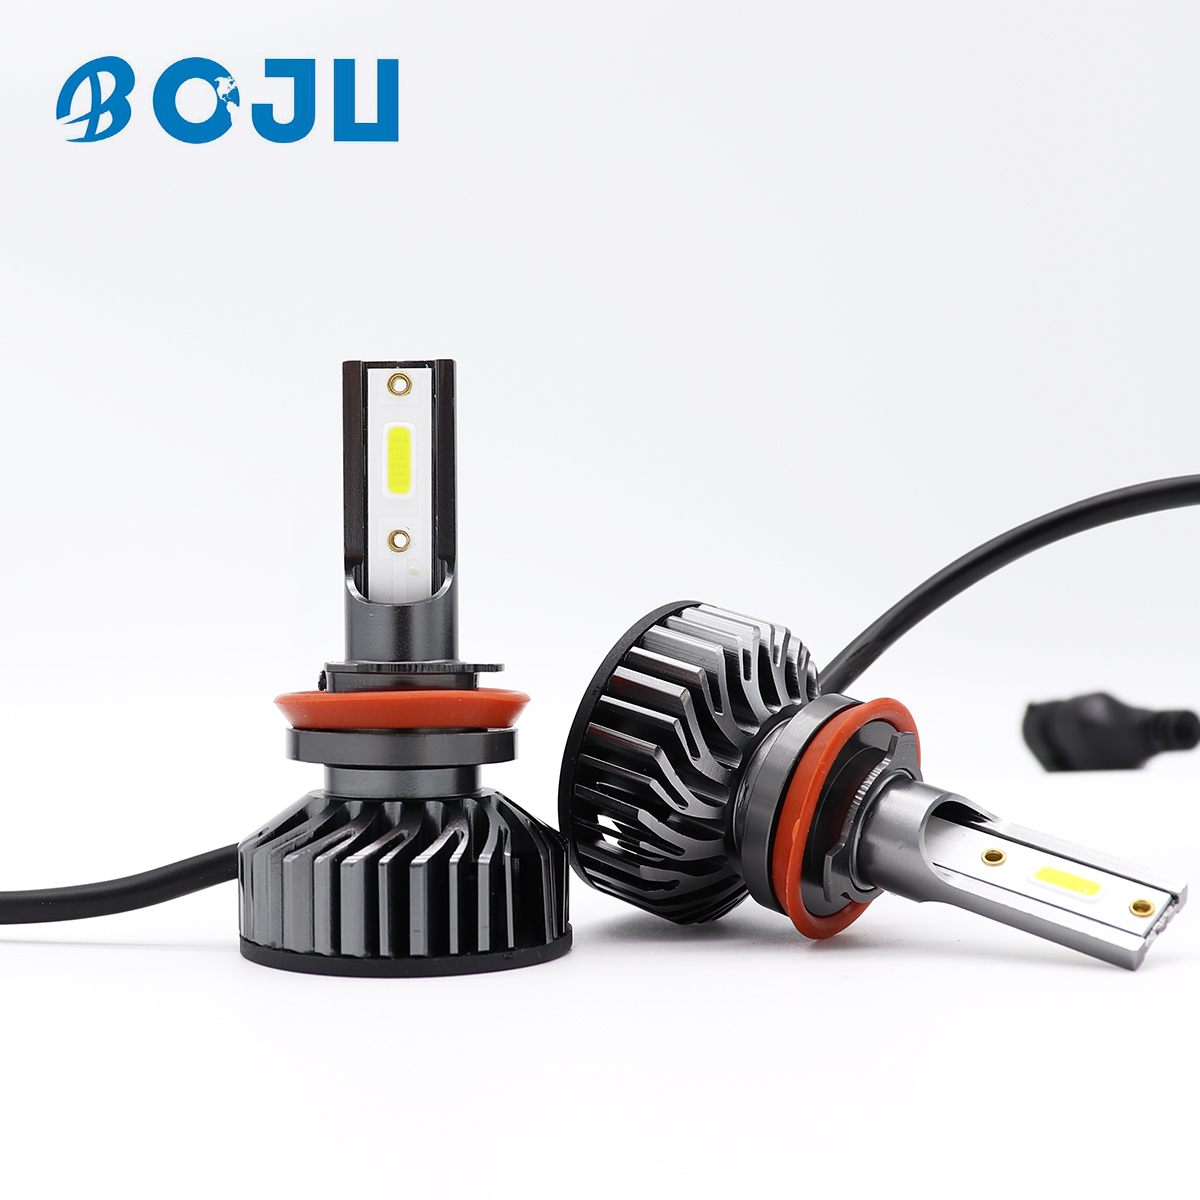 Car mini <strong>led</strong> projector headlight for car headlamp waterproof